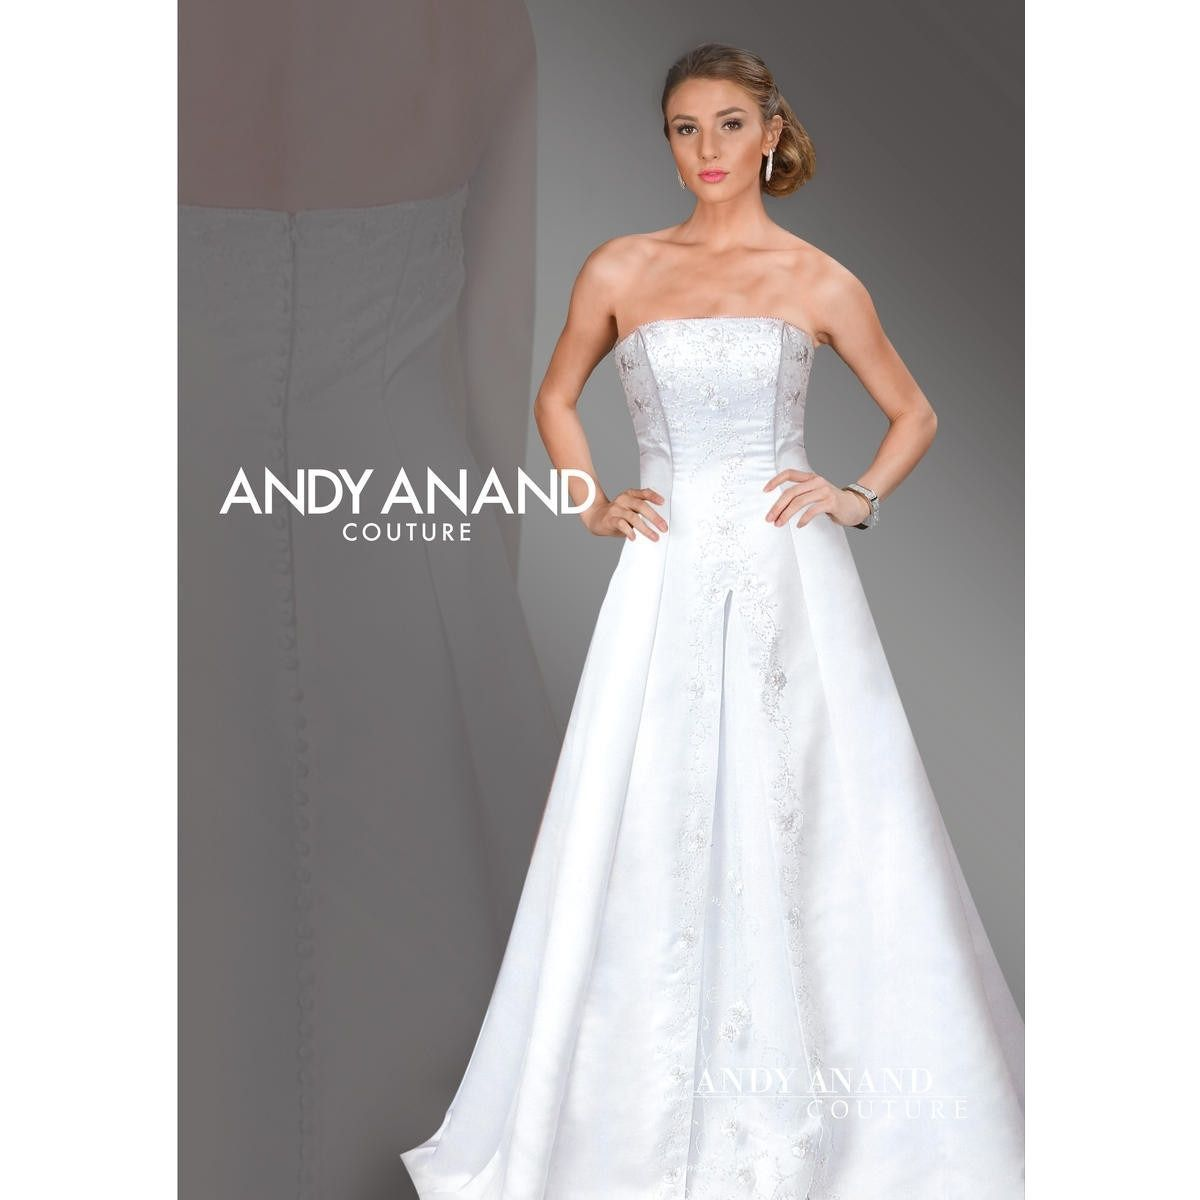 Andy anand couture strapless beaded satin bridal gown products